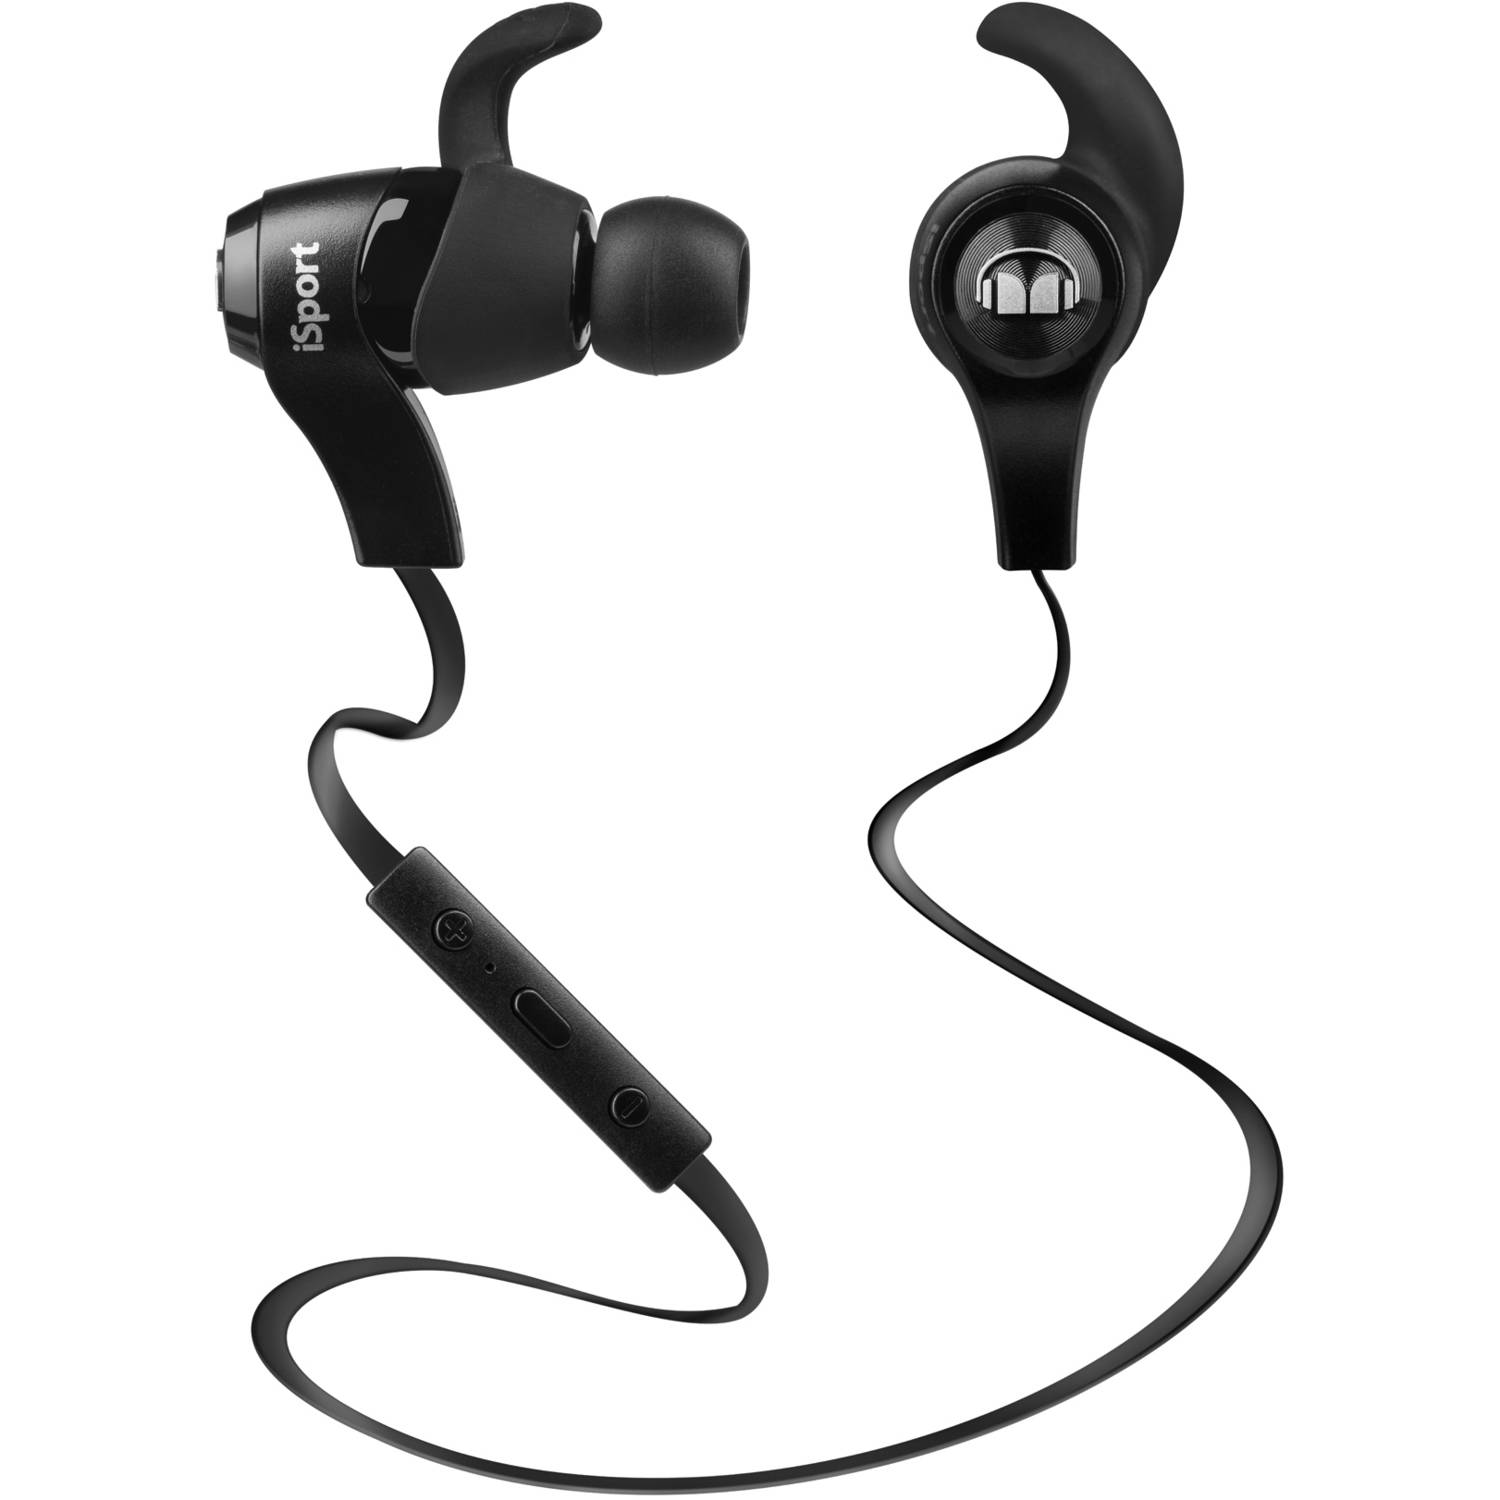 Wireless bluetooth headset walmart